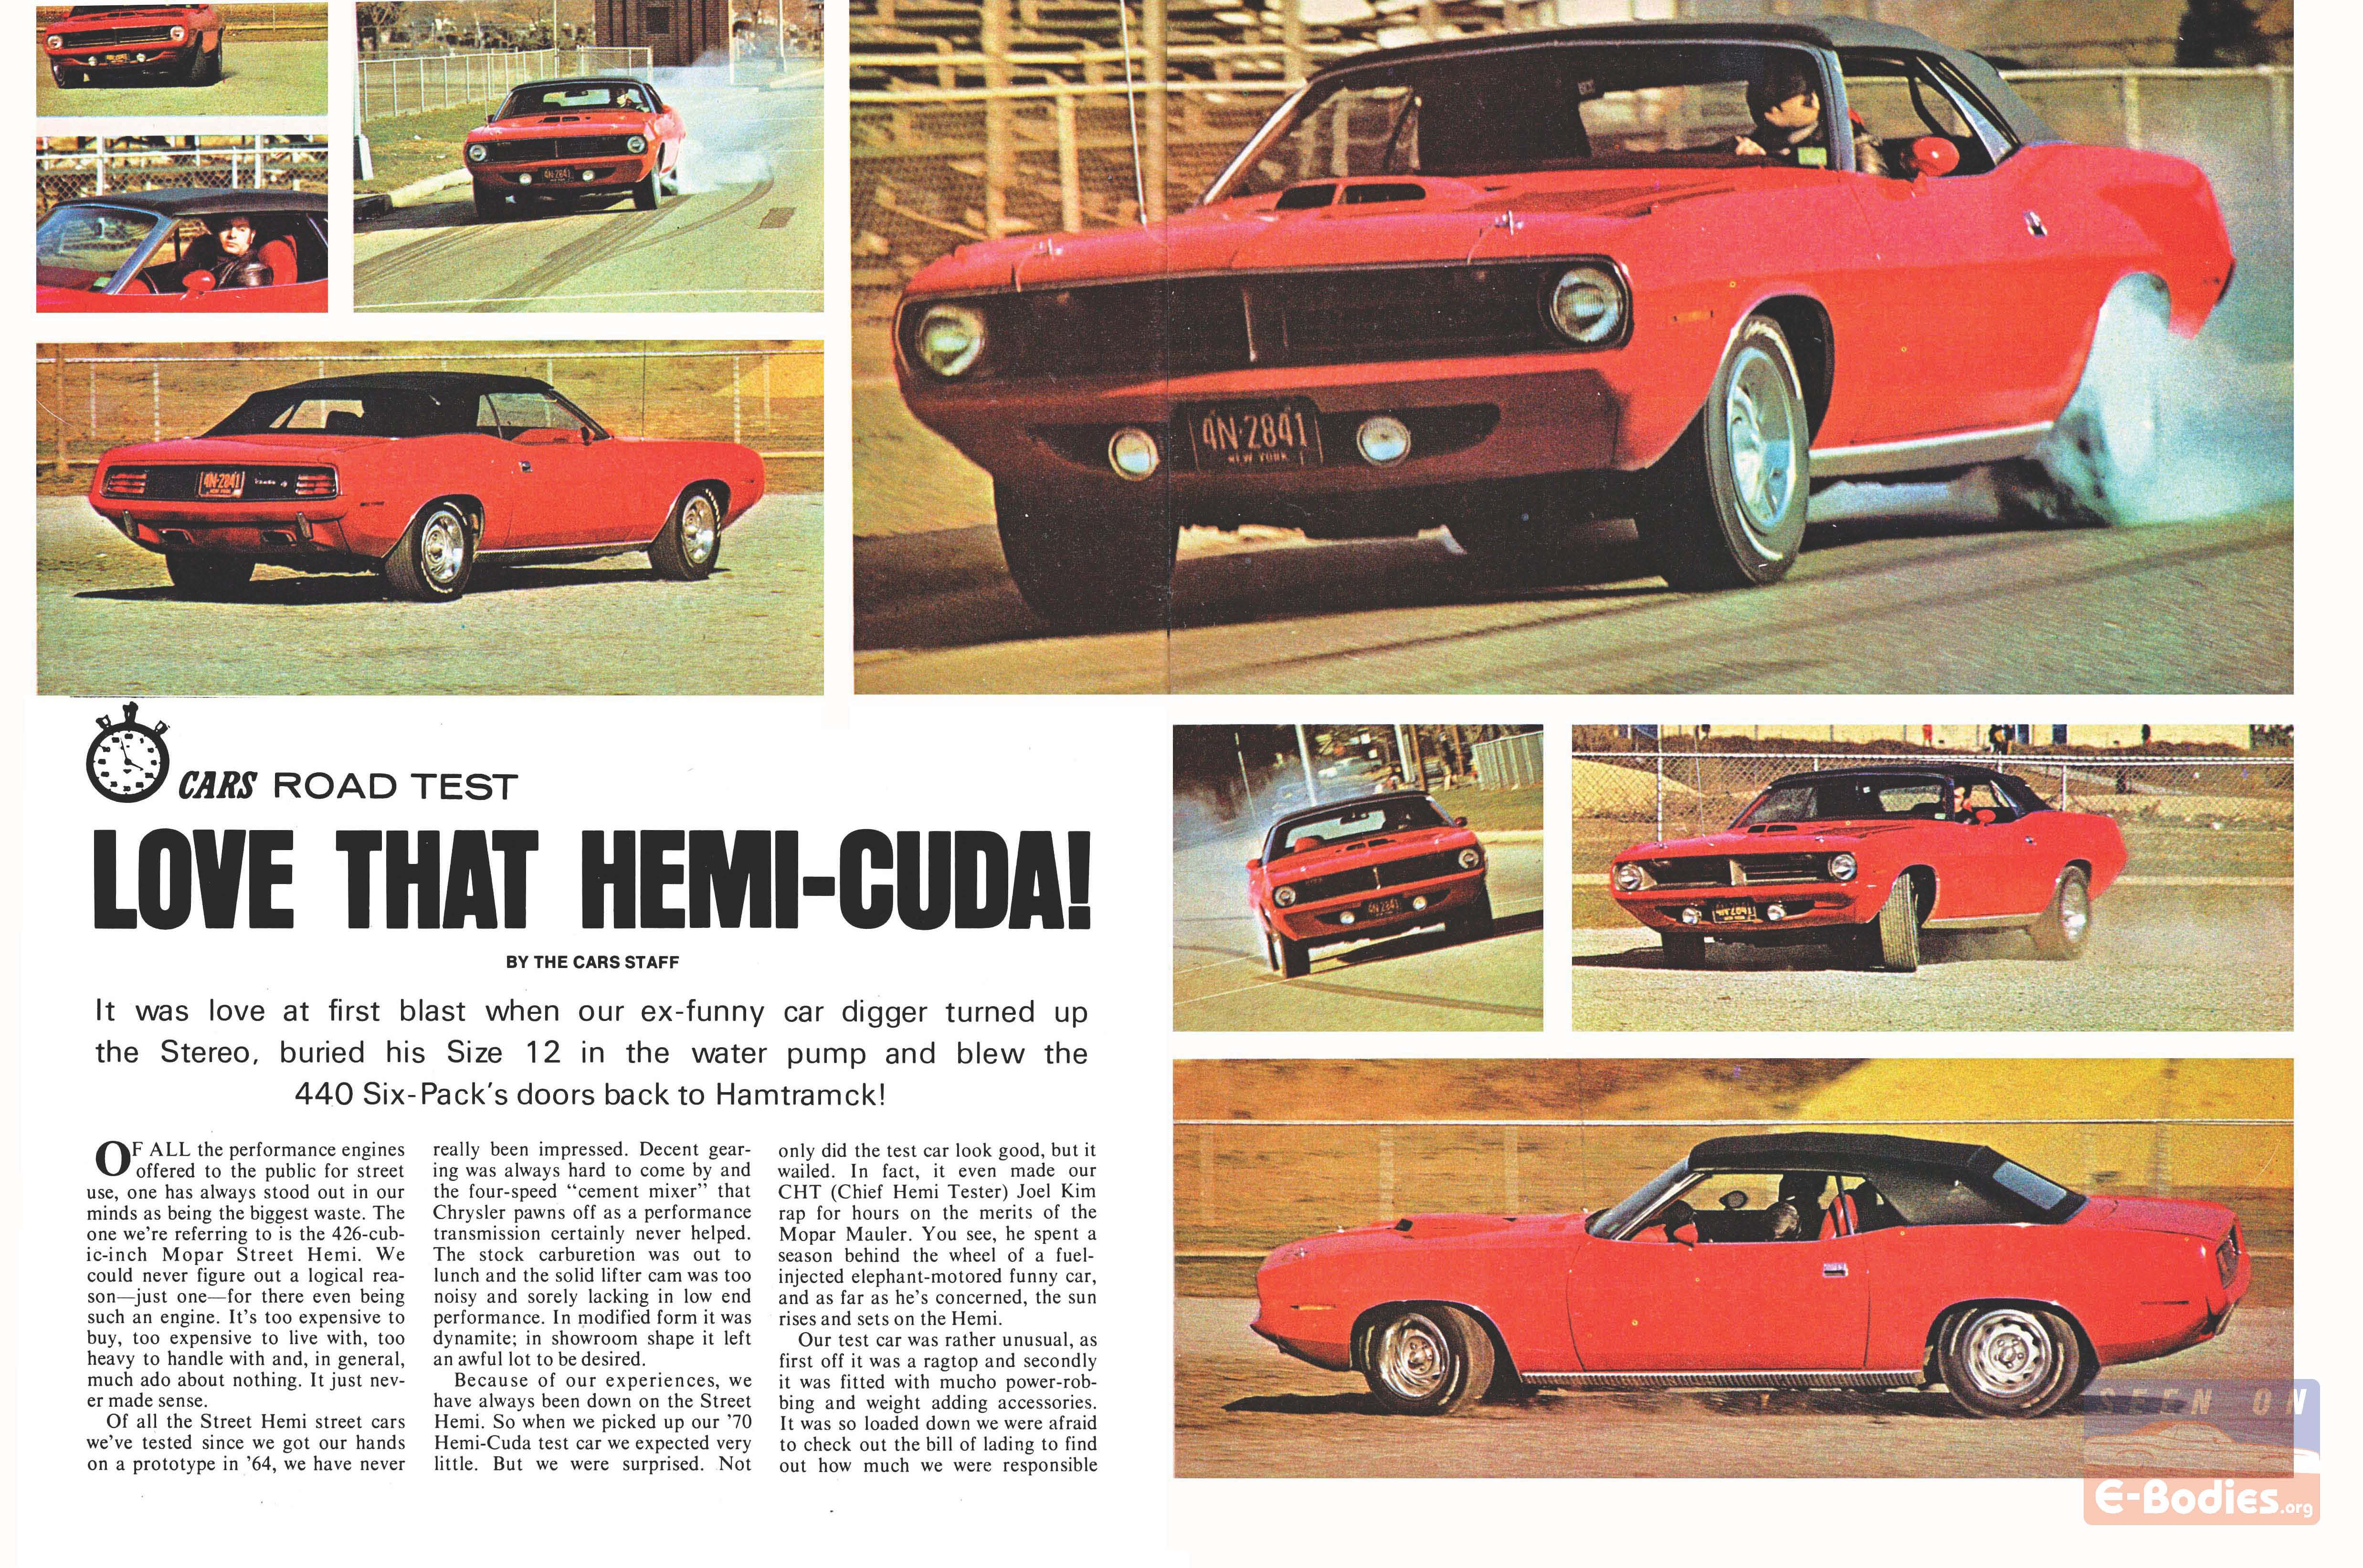 1970 Plymouth 426 Hemi Cuda Review / Road Test Article – E